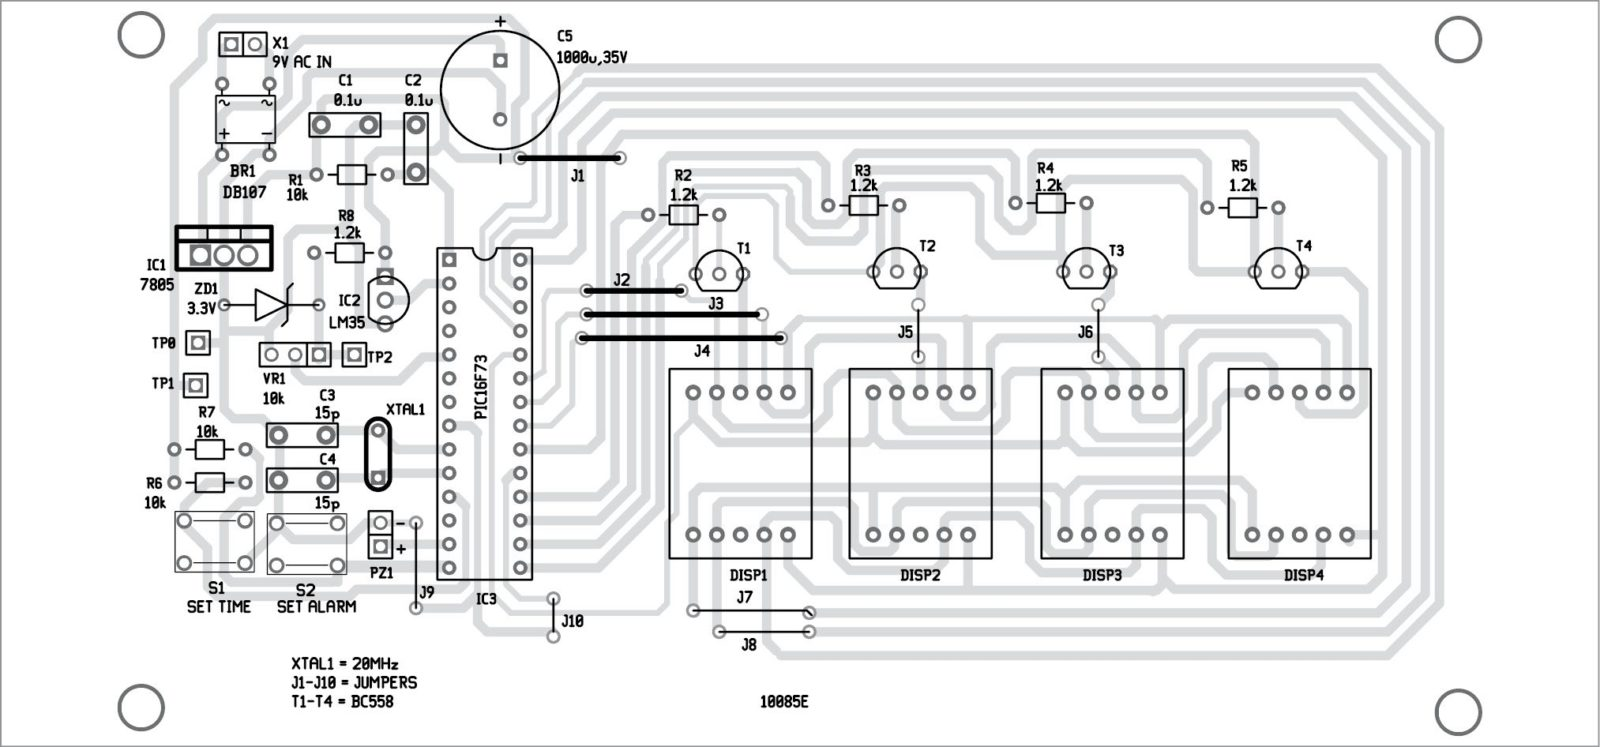 Fig. 3 Component layout of the PCB